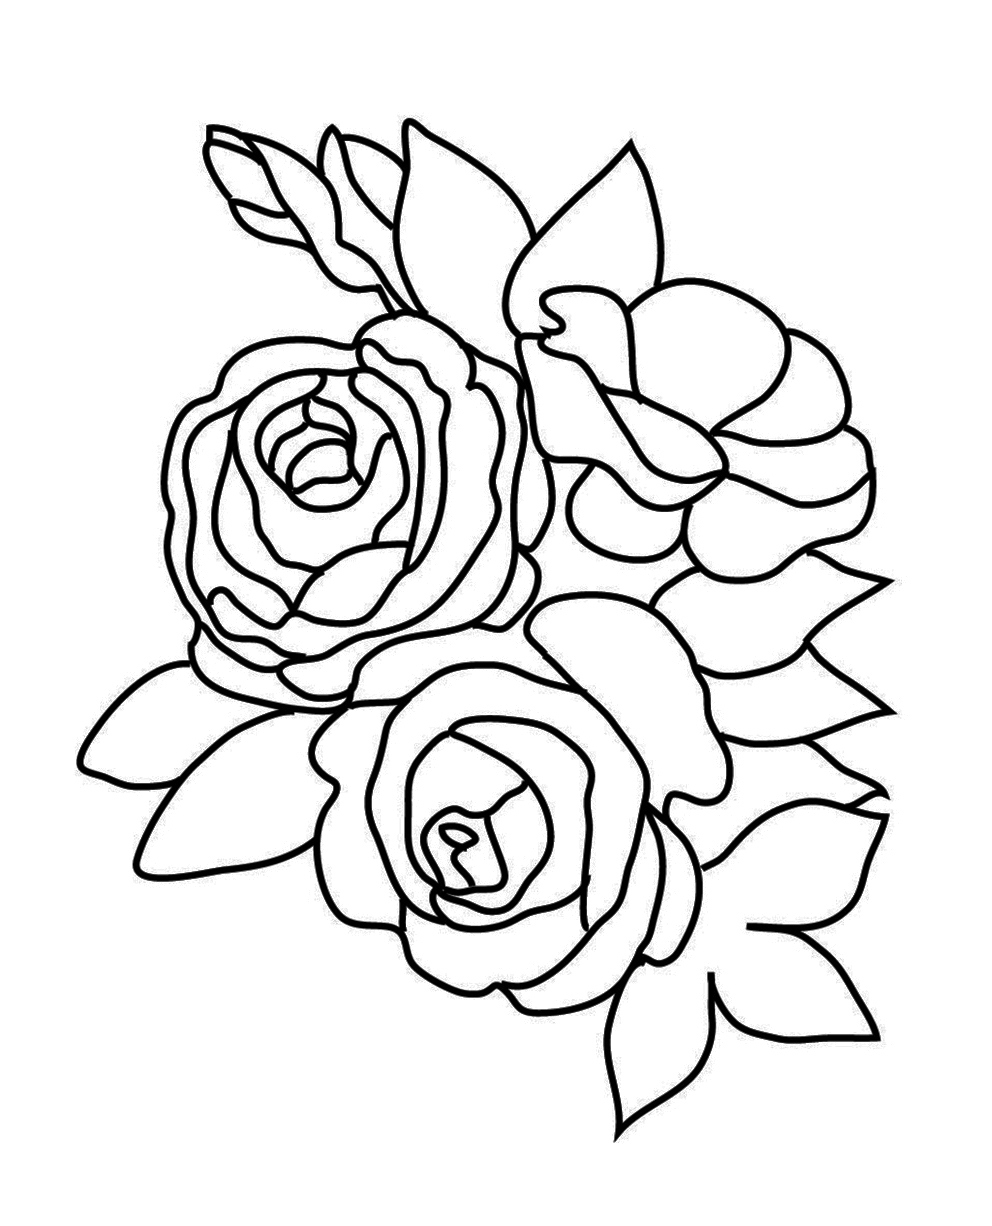 coloring book rose flower coloring pages coloring rose book